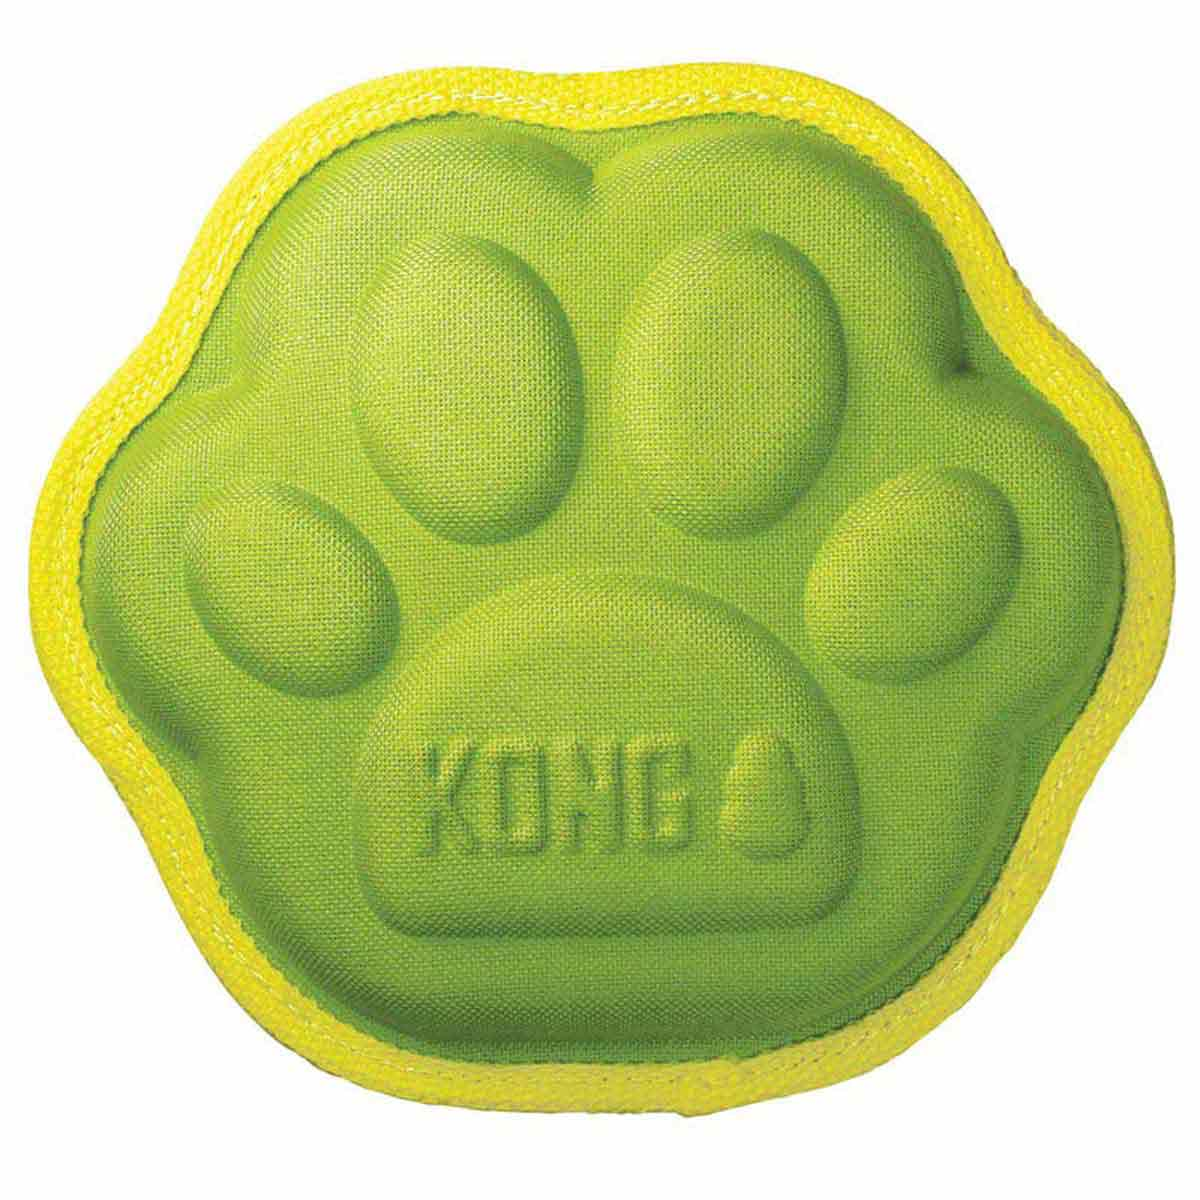 KONG Ballistic Imprints Paw Dog Toy